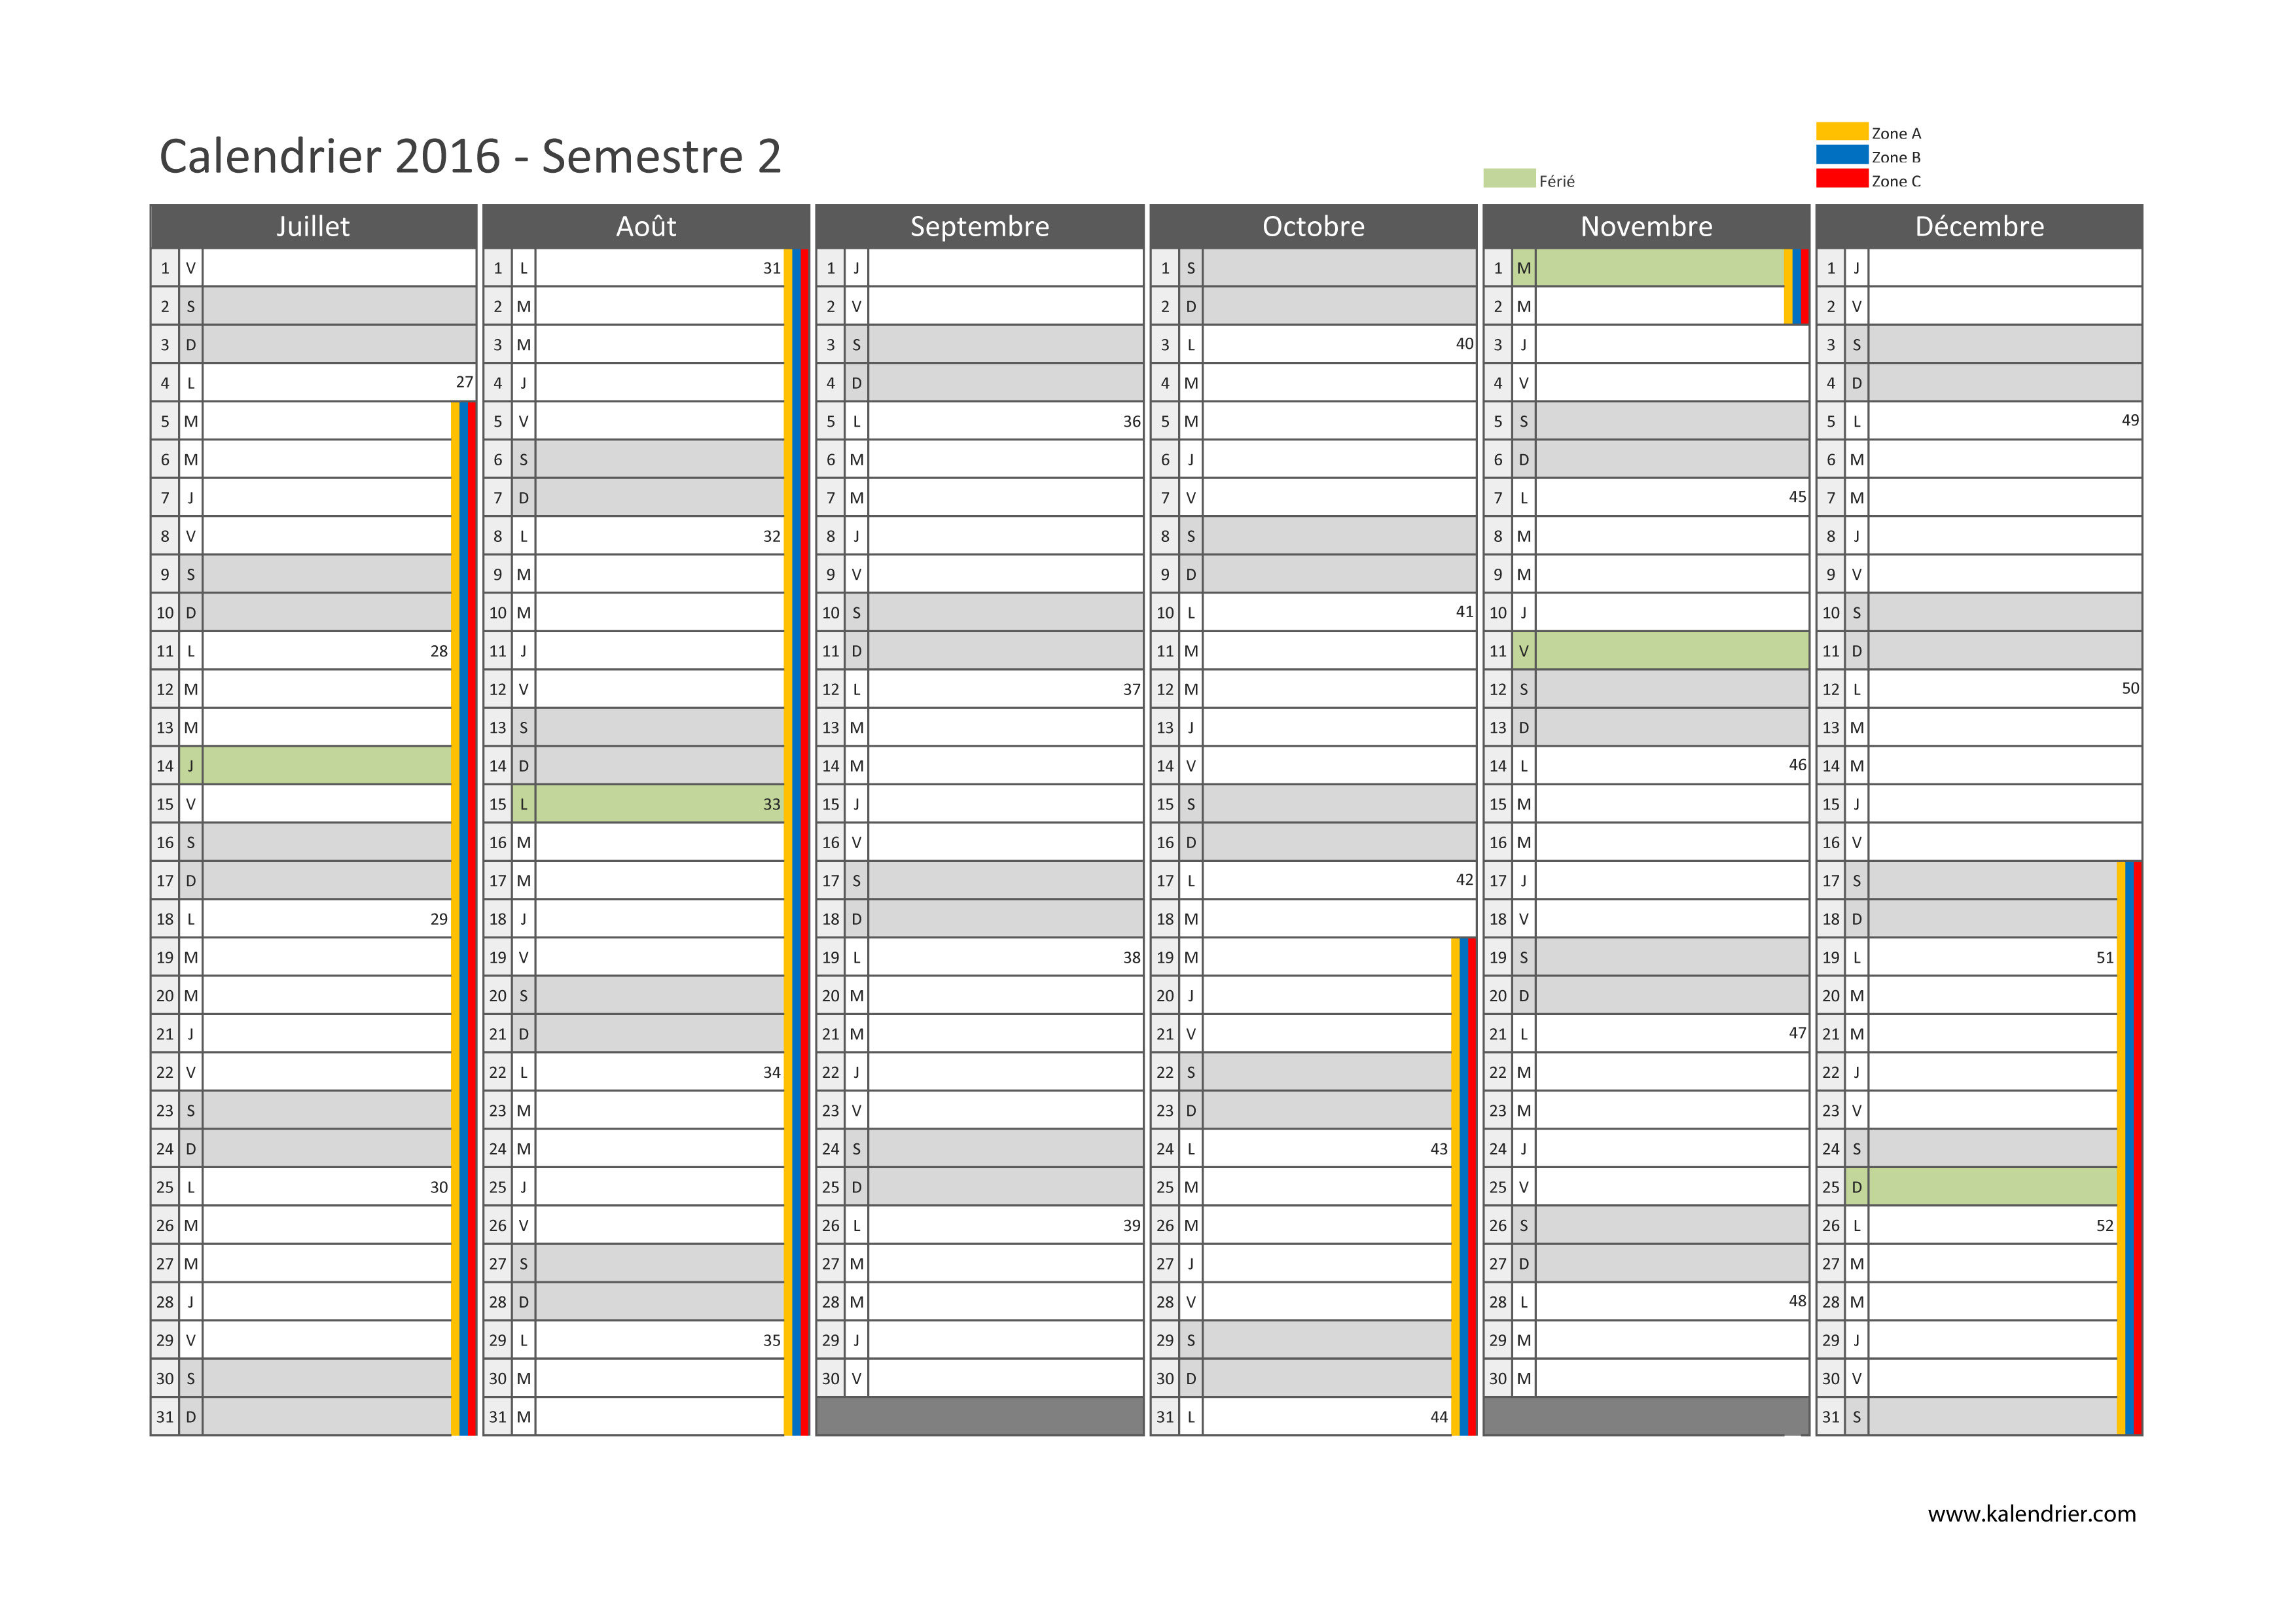 Calendrier imprimable 2016 2017